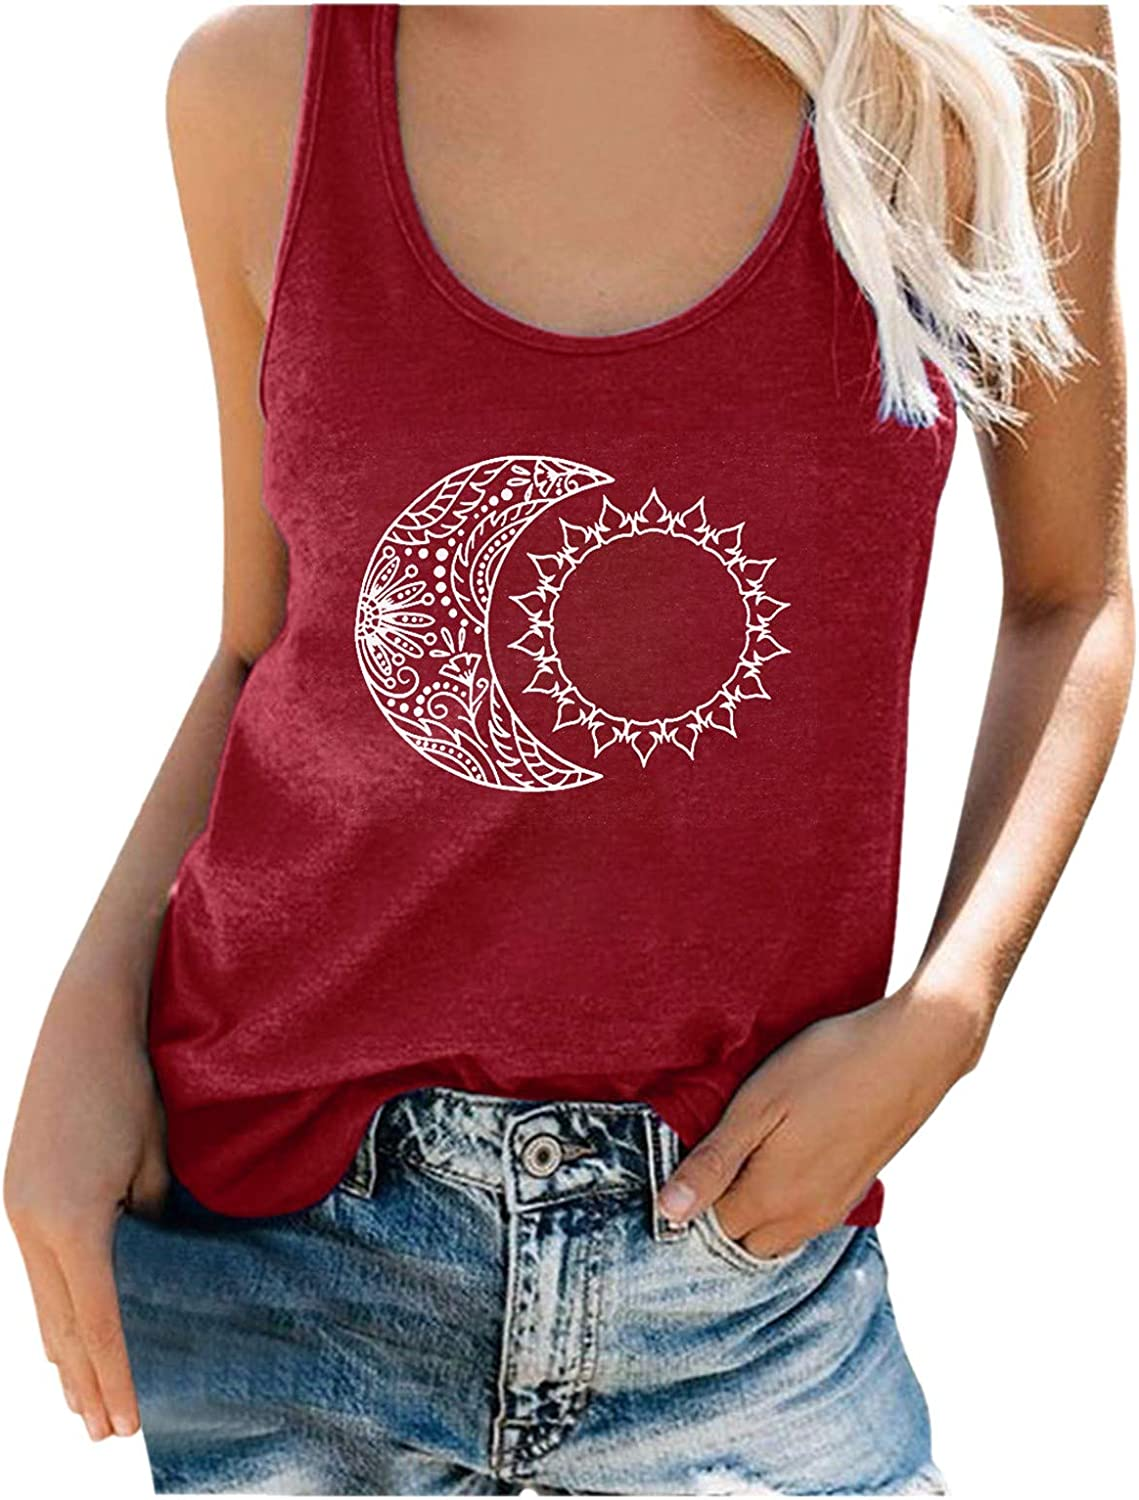 NLOMOCT Womens Summer Tank Tops Sl Women's Sales gift of SALE items from new works Letter Print Crewneck